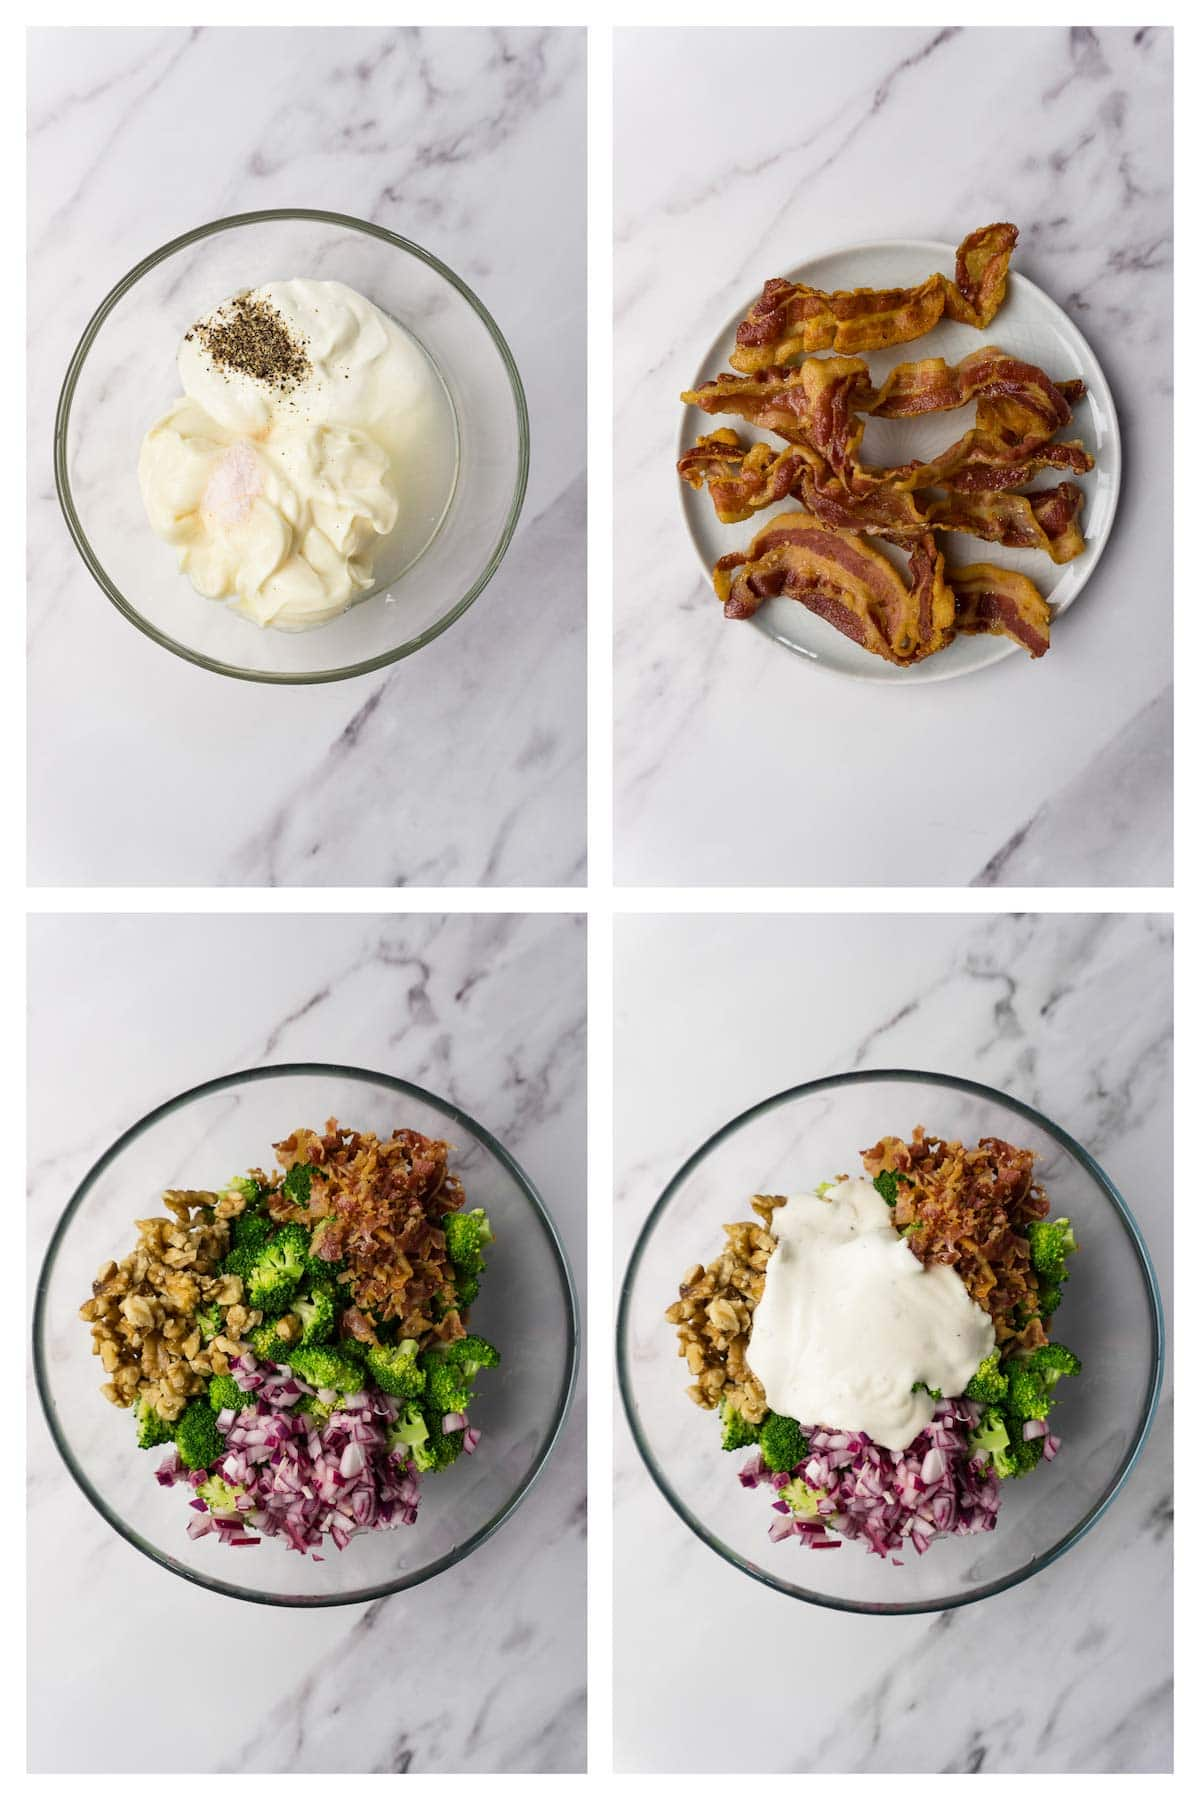 4 images collage picture showing how to make broccoli salad with bacon, onions and walnuts.